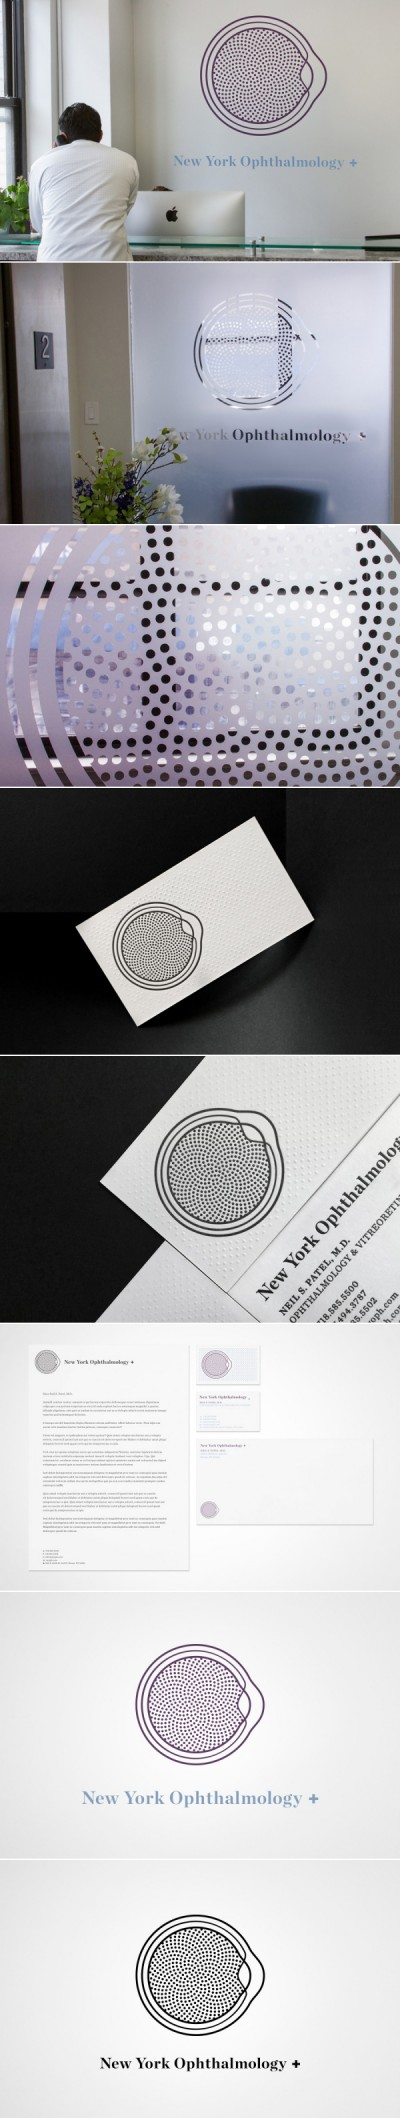 Ophtalmology - logo identity creation